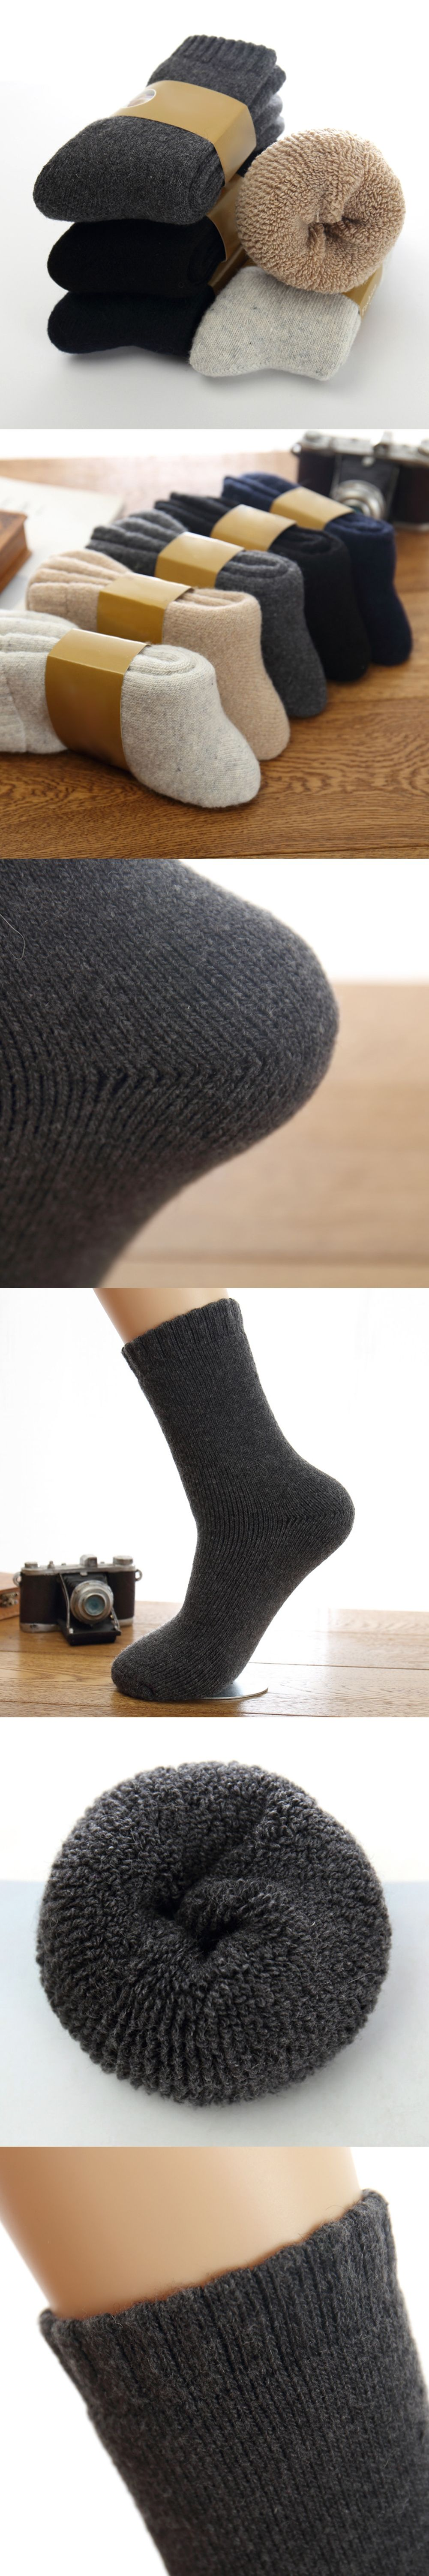 f8139806f9 3 Pairs/Set Winter Resist Cold Thicken Men Wool Solid Color Tube Socks Pile  Socks